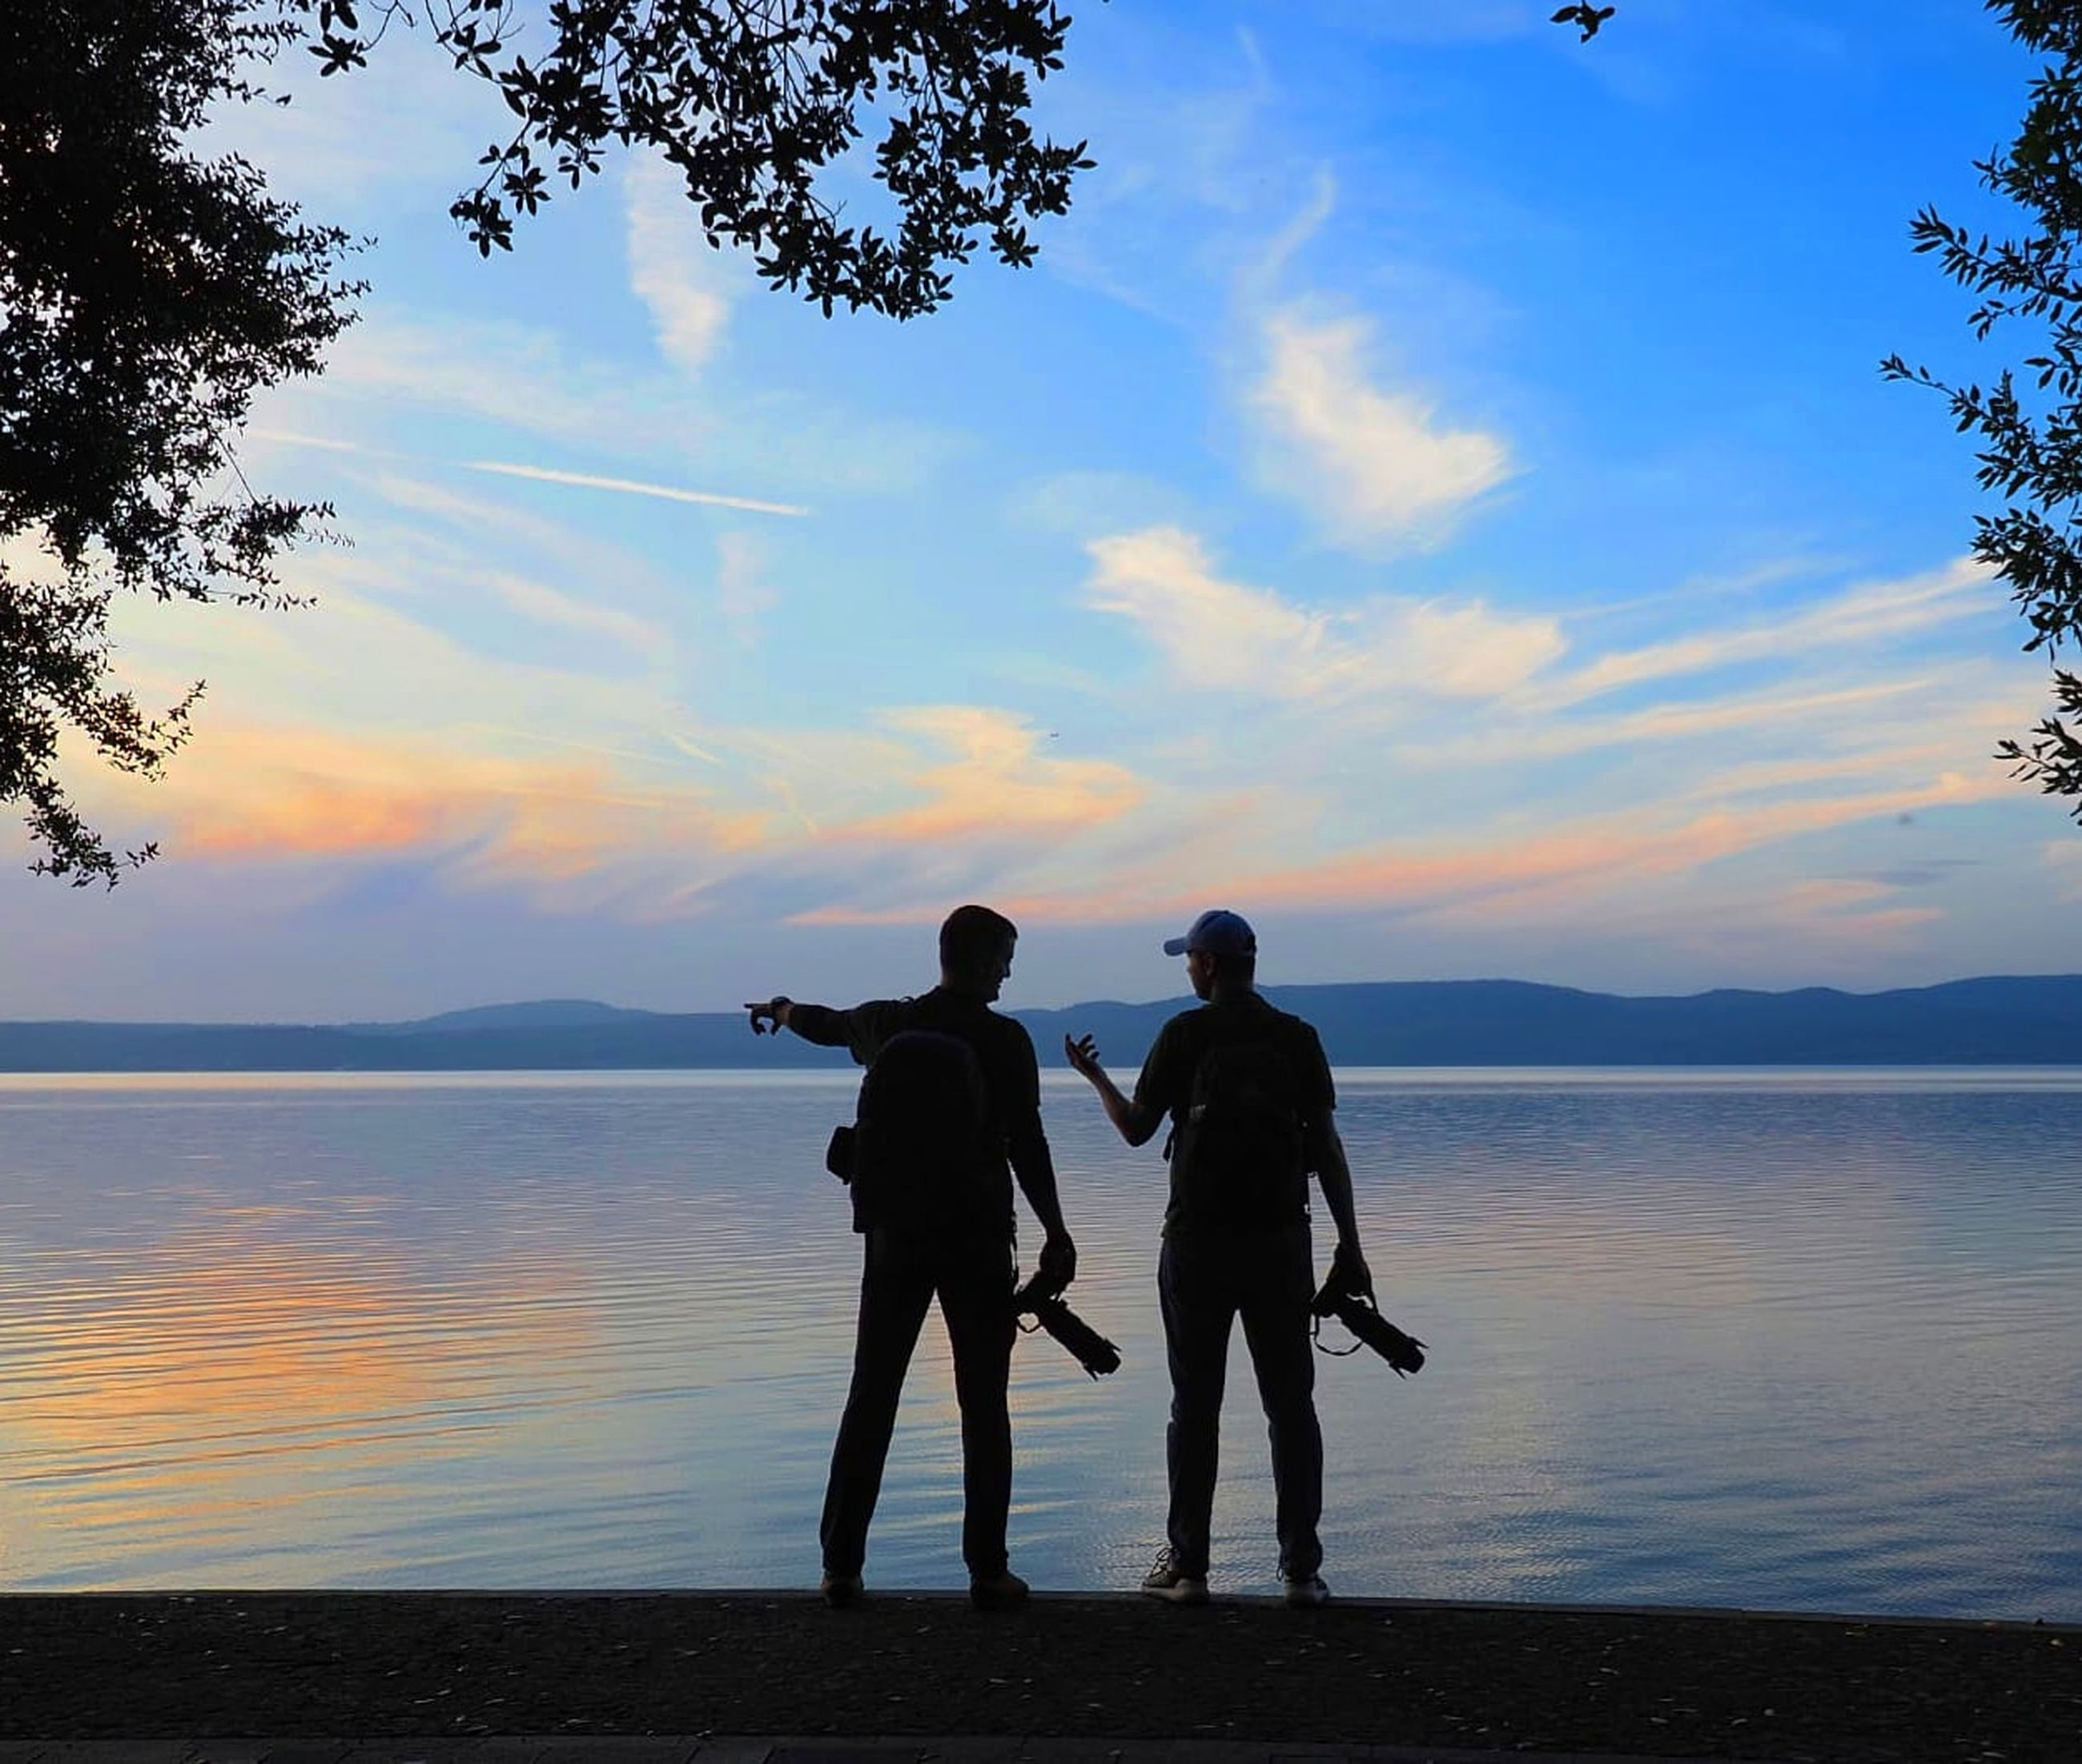 sky, water, real people, men, beauty in nature, standing, togetherness, lifestyles, cloud - sky, scenics - nature, silhouette, full length, leisure activity, two people, nature, lake, bonding, people, sunset, positive emotion, outdoors, couple - relationship